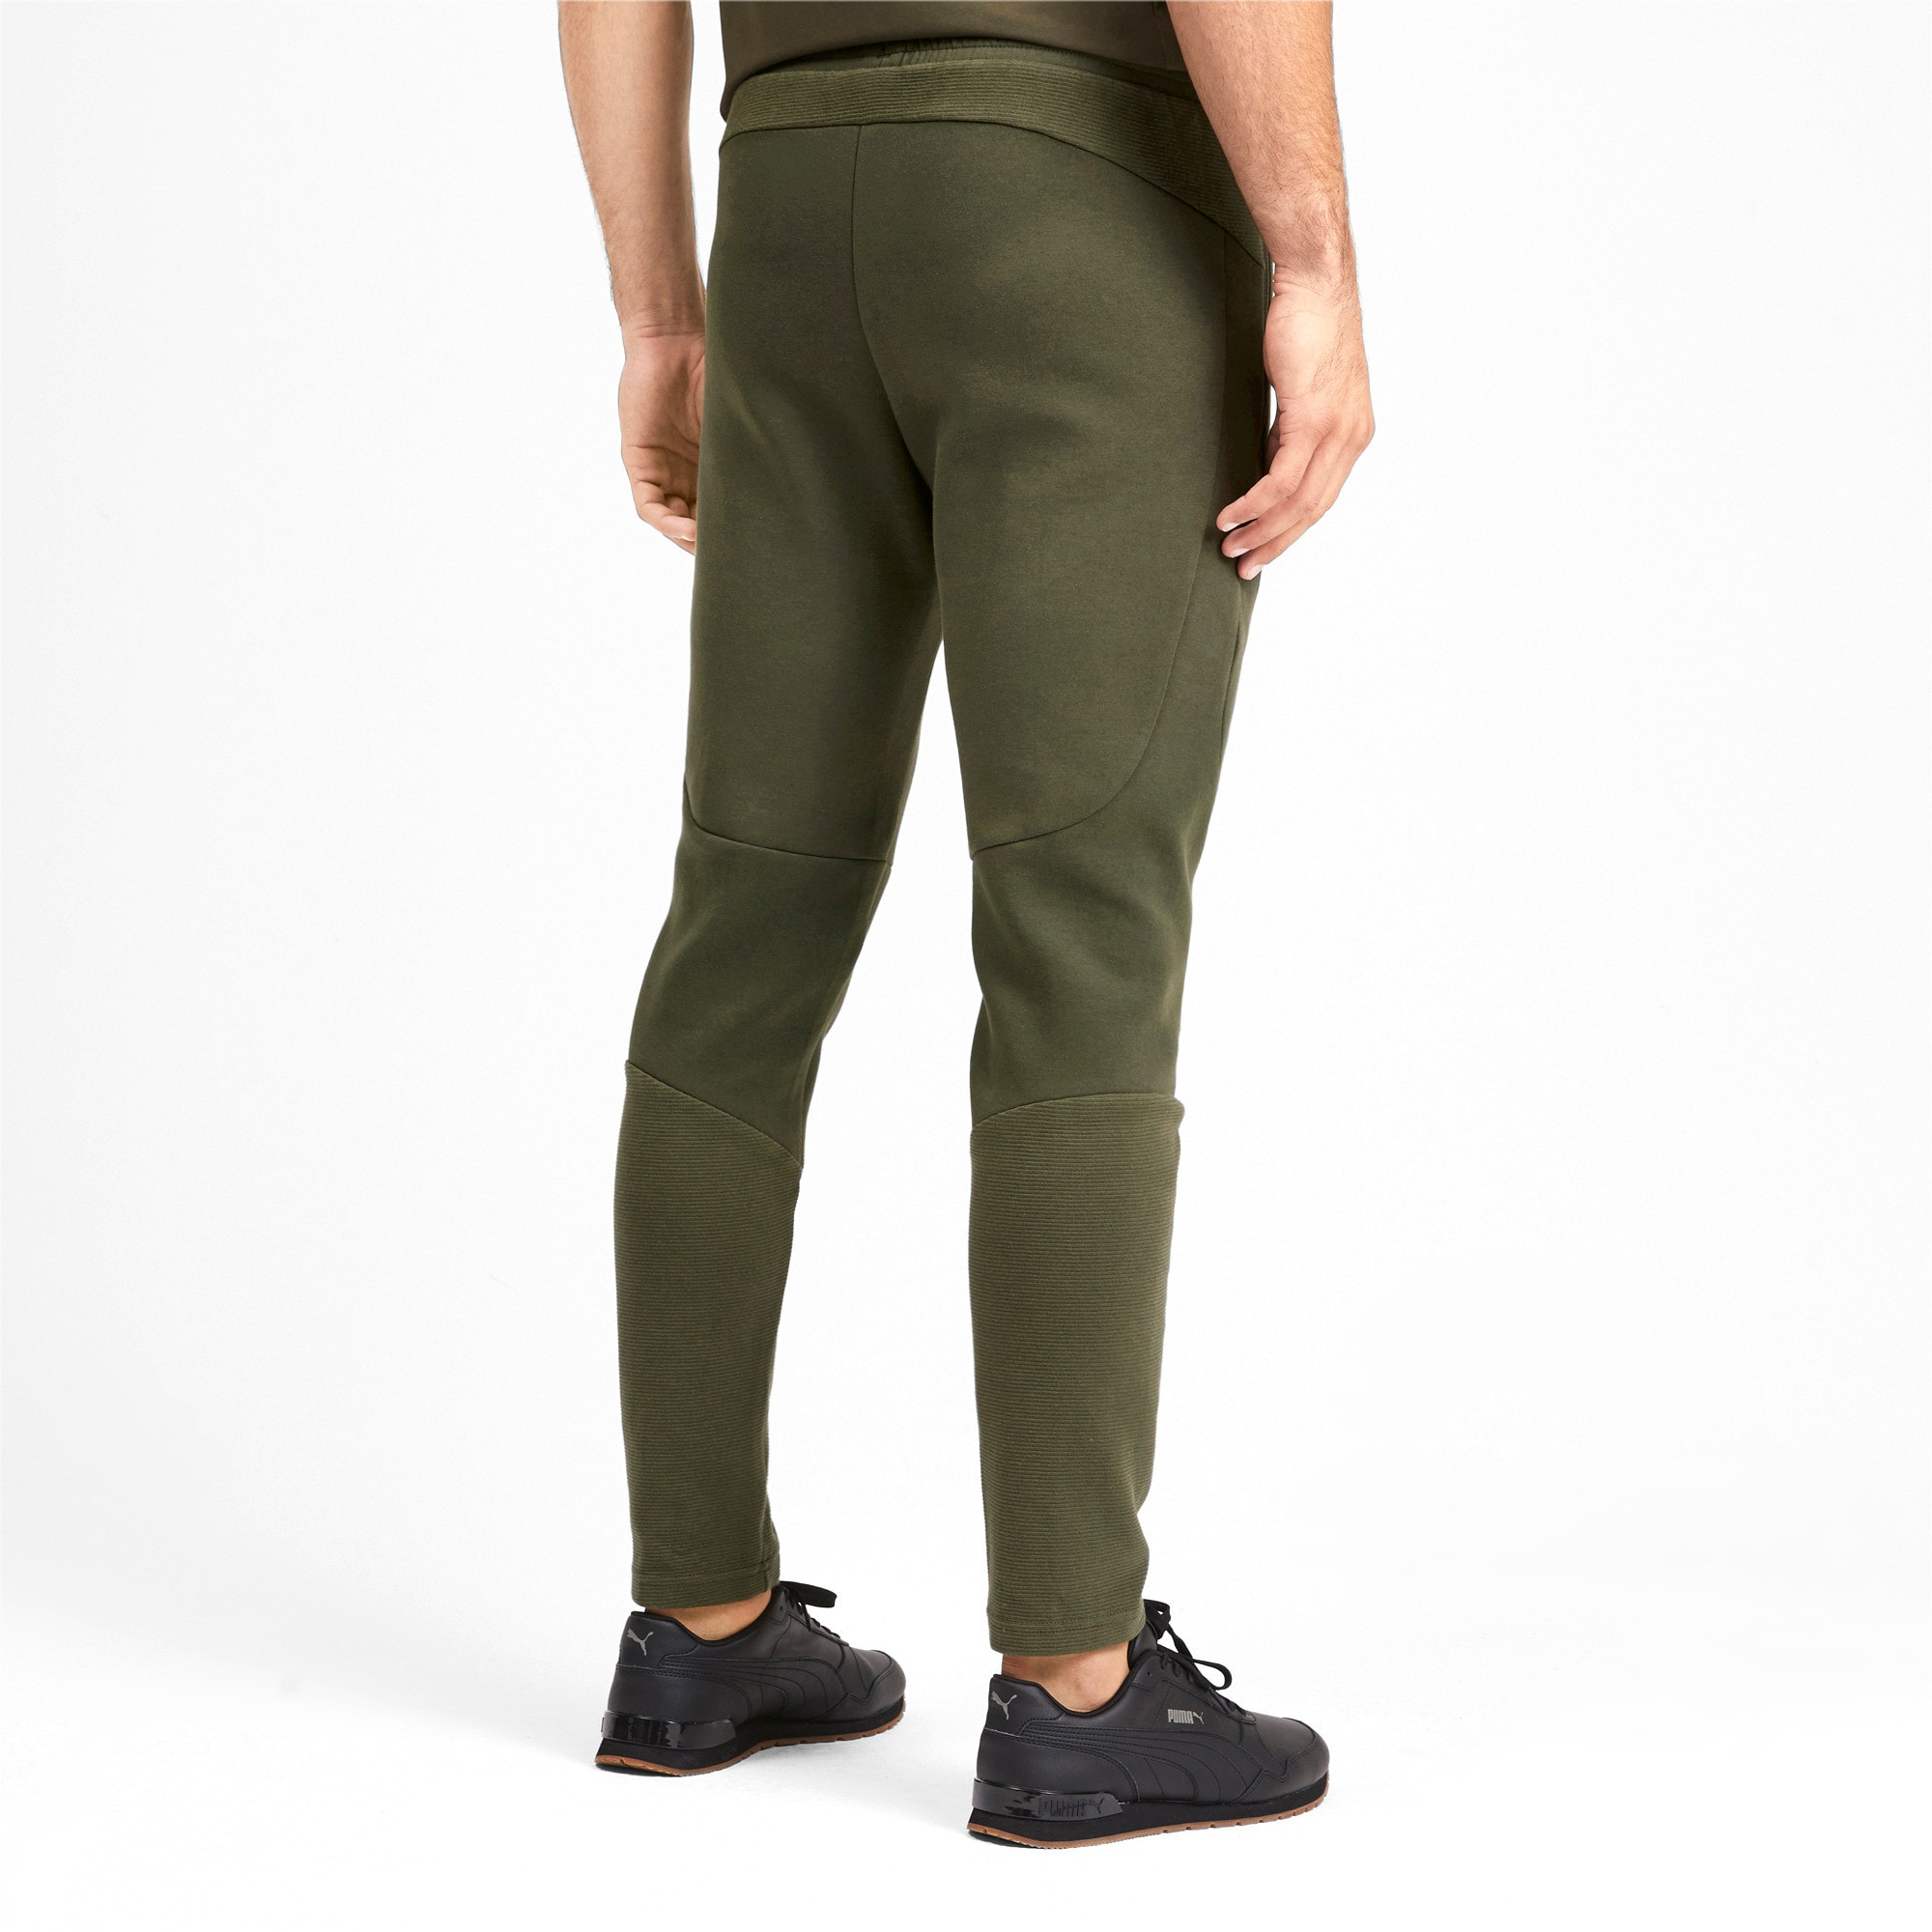 Thumbnail 2 of Evostripe Men's Pants, Forest Night, medium